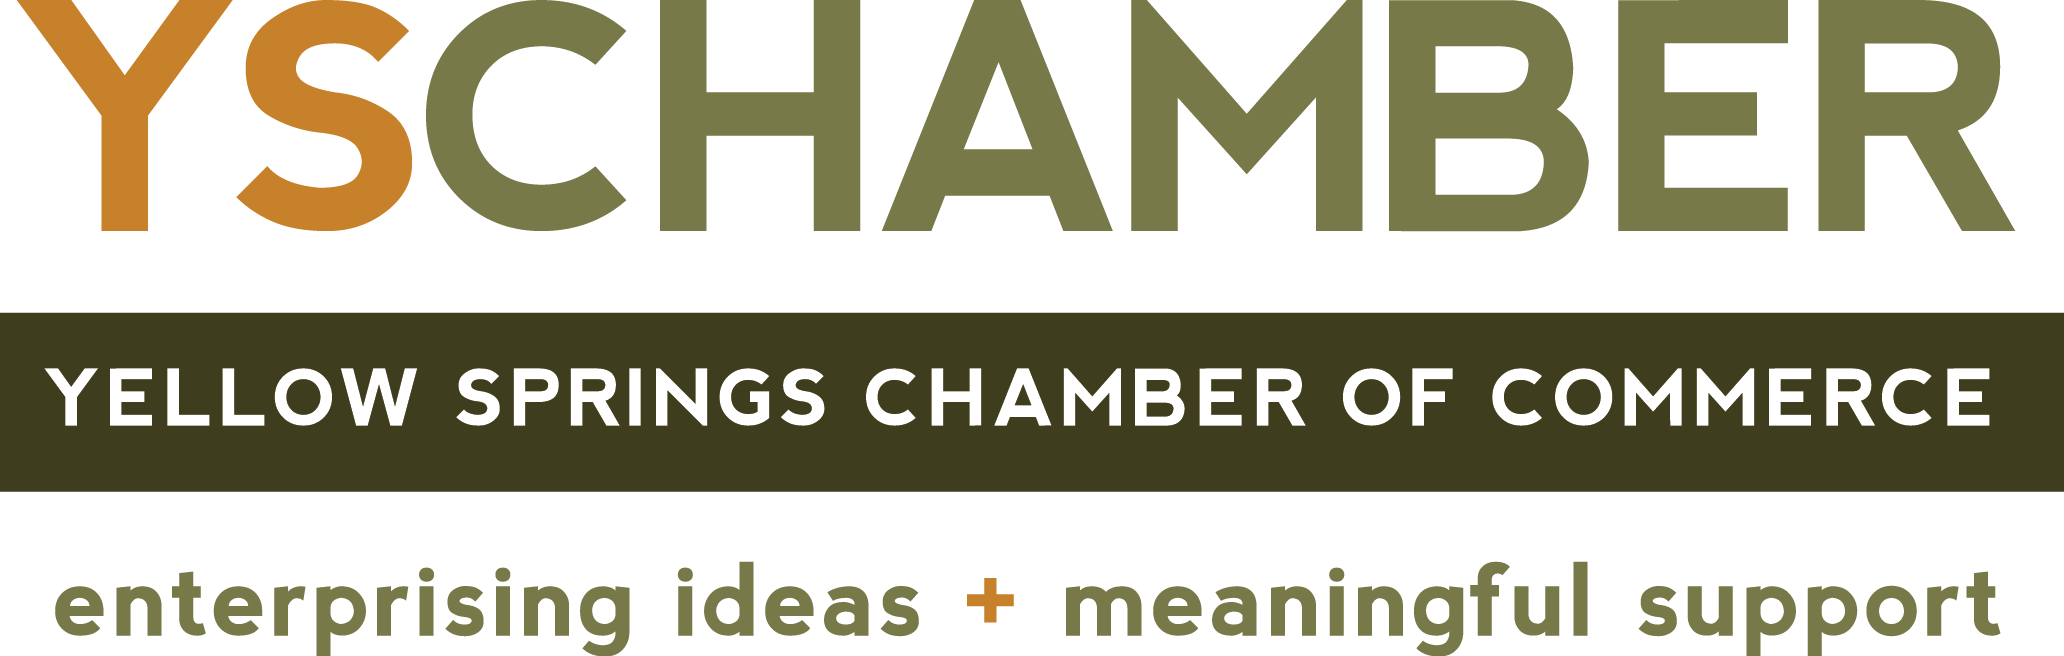 YS_Chamber_logo_final_clear (2).png